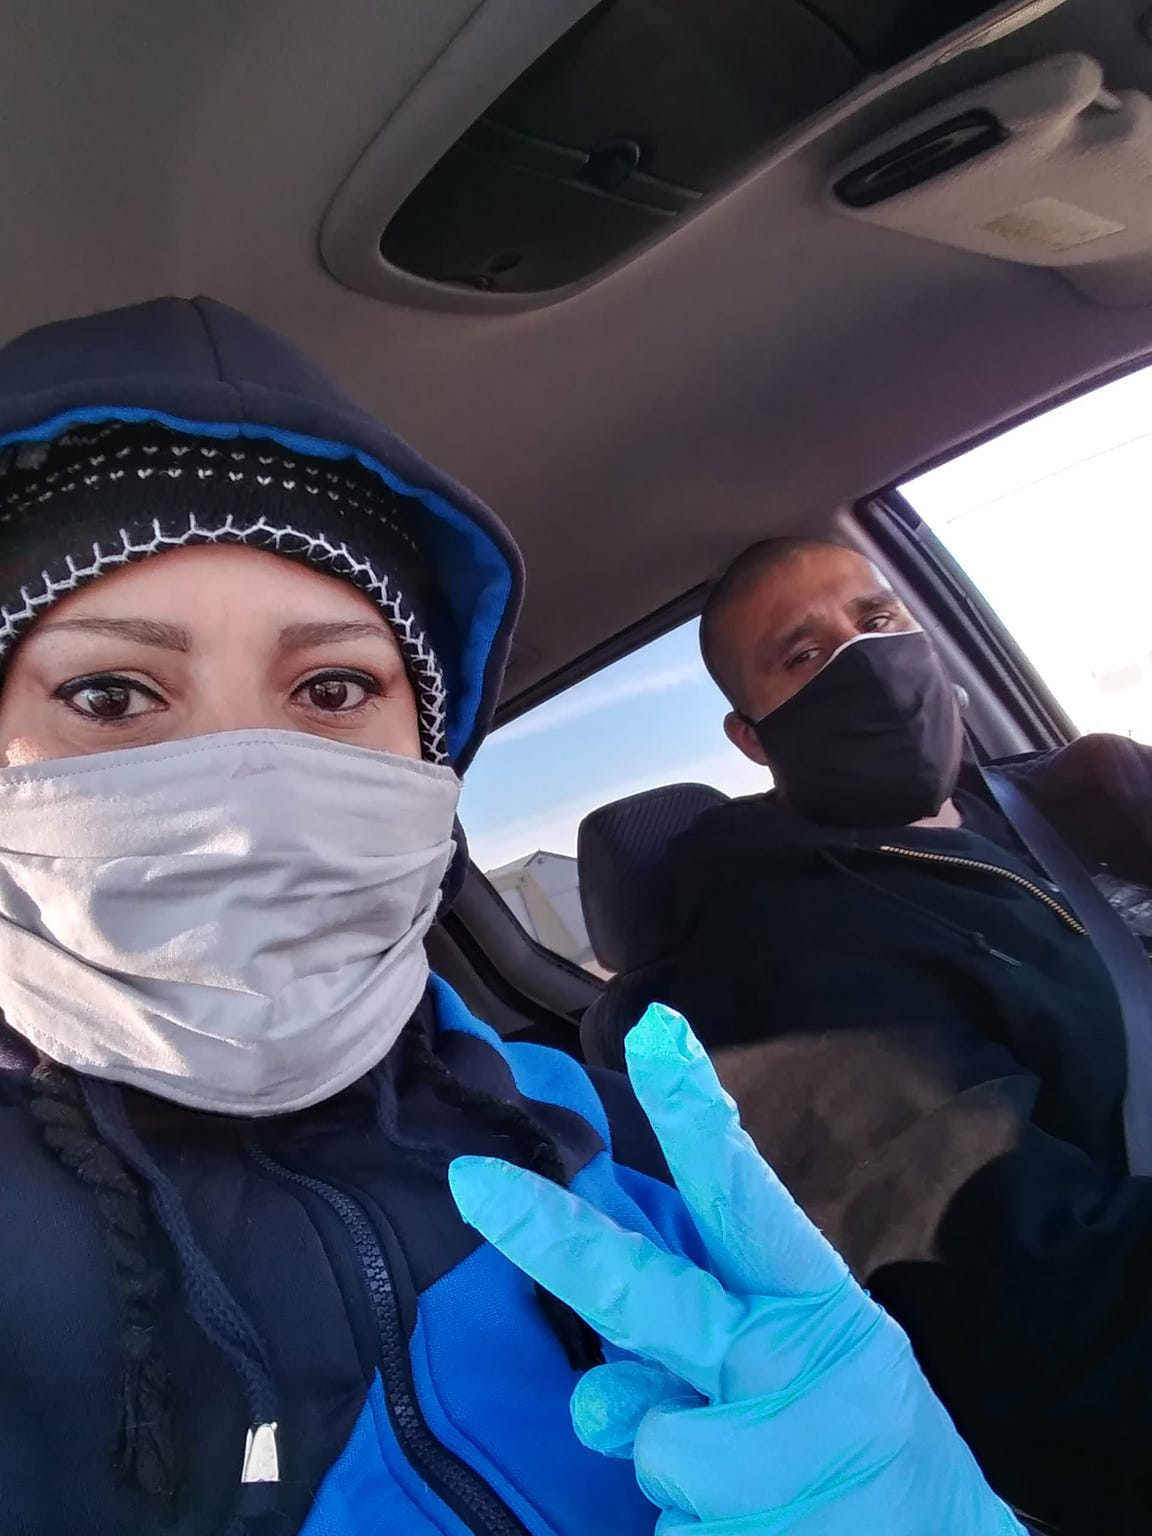 Jolene and Joseph Barrientes protect themselves when they leave the house to stay safe from the coronavirus.